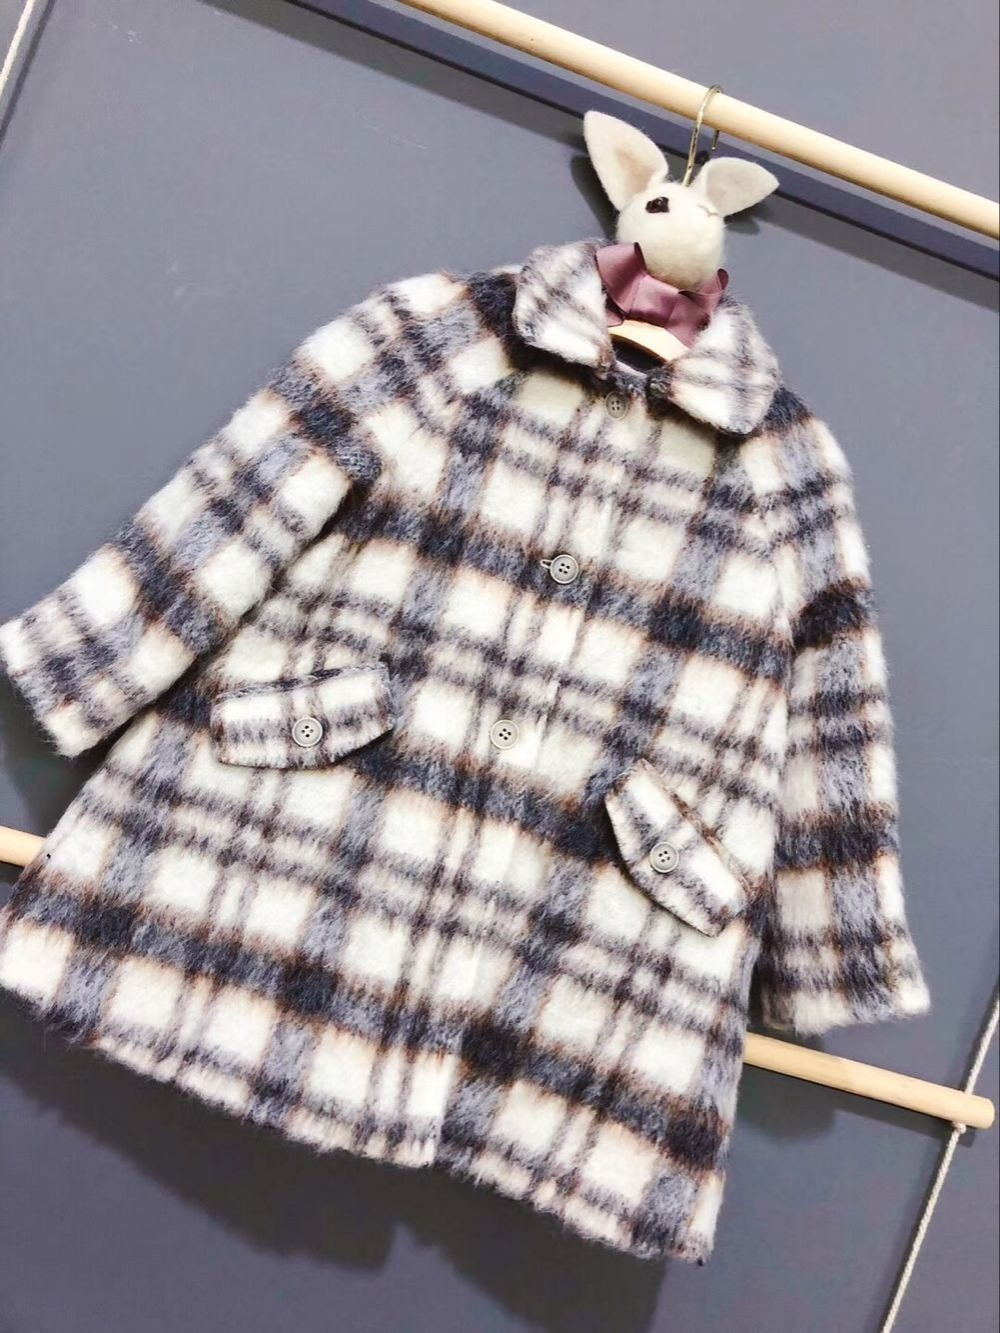 цена на Girls woolen overcoat new fashion clothes for kid girls Teens autumn winter long coat warm outerwear in late of September